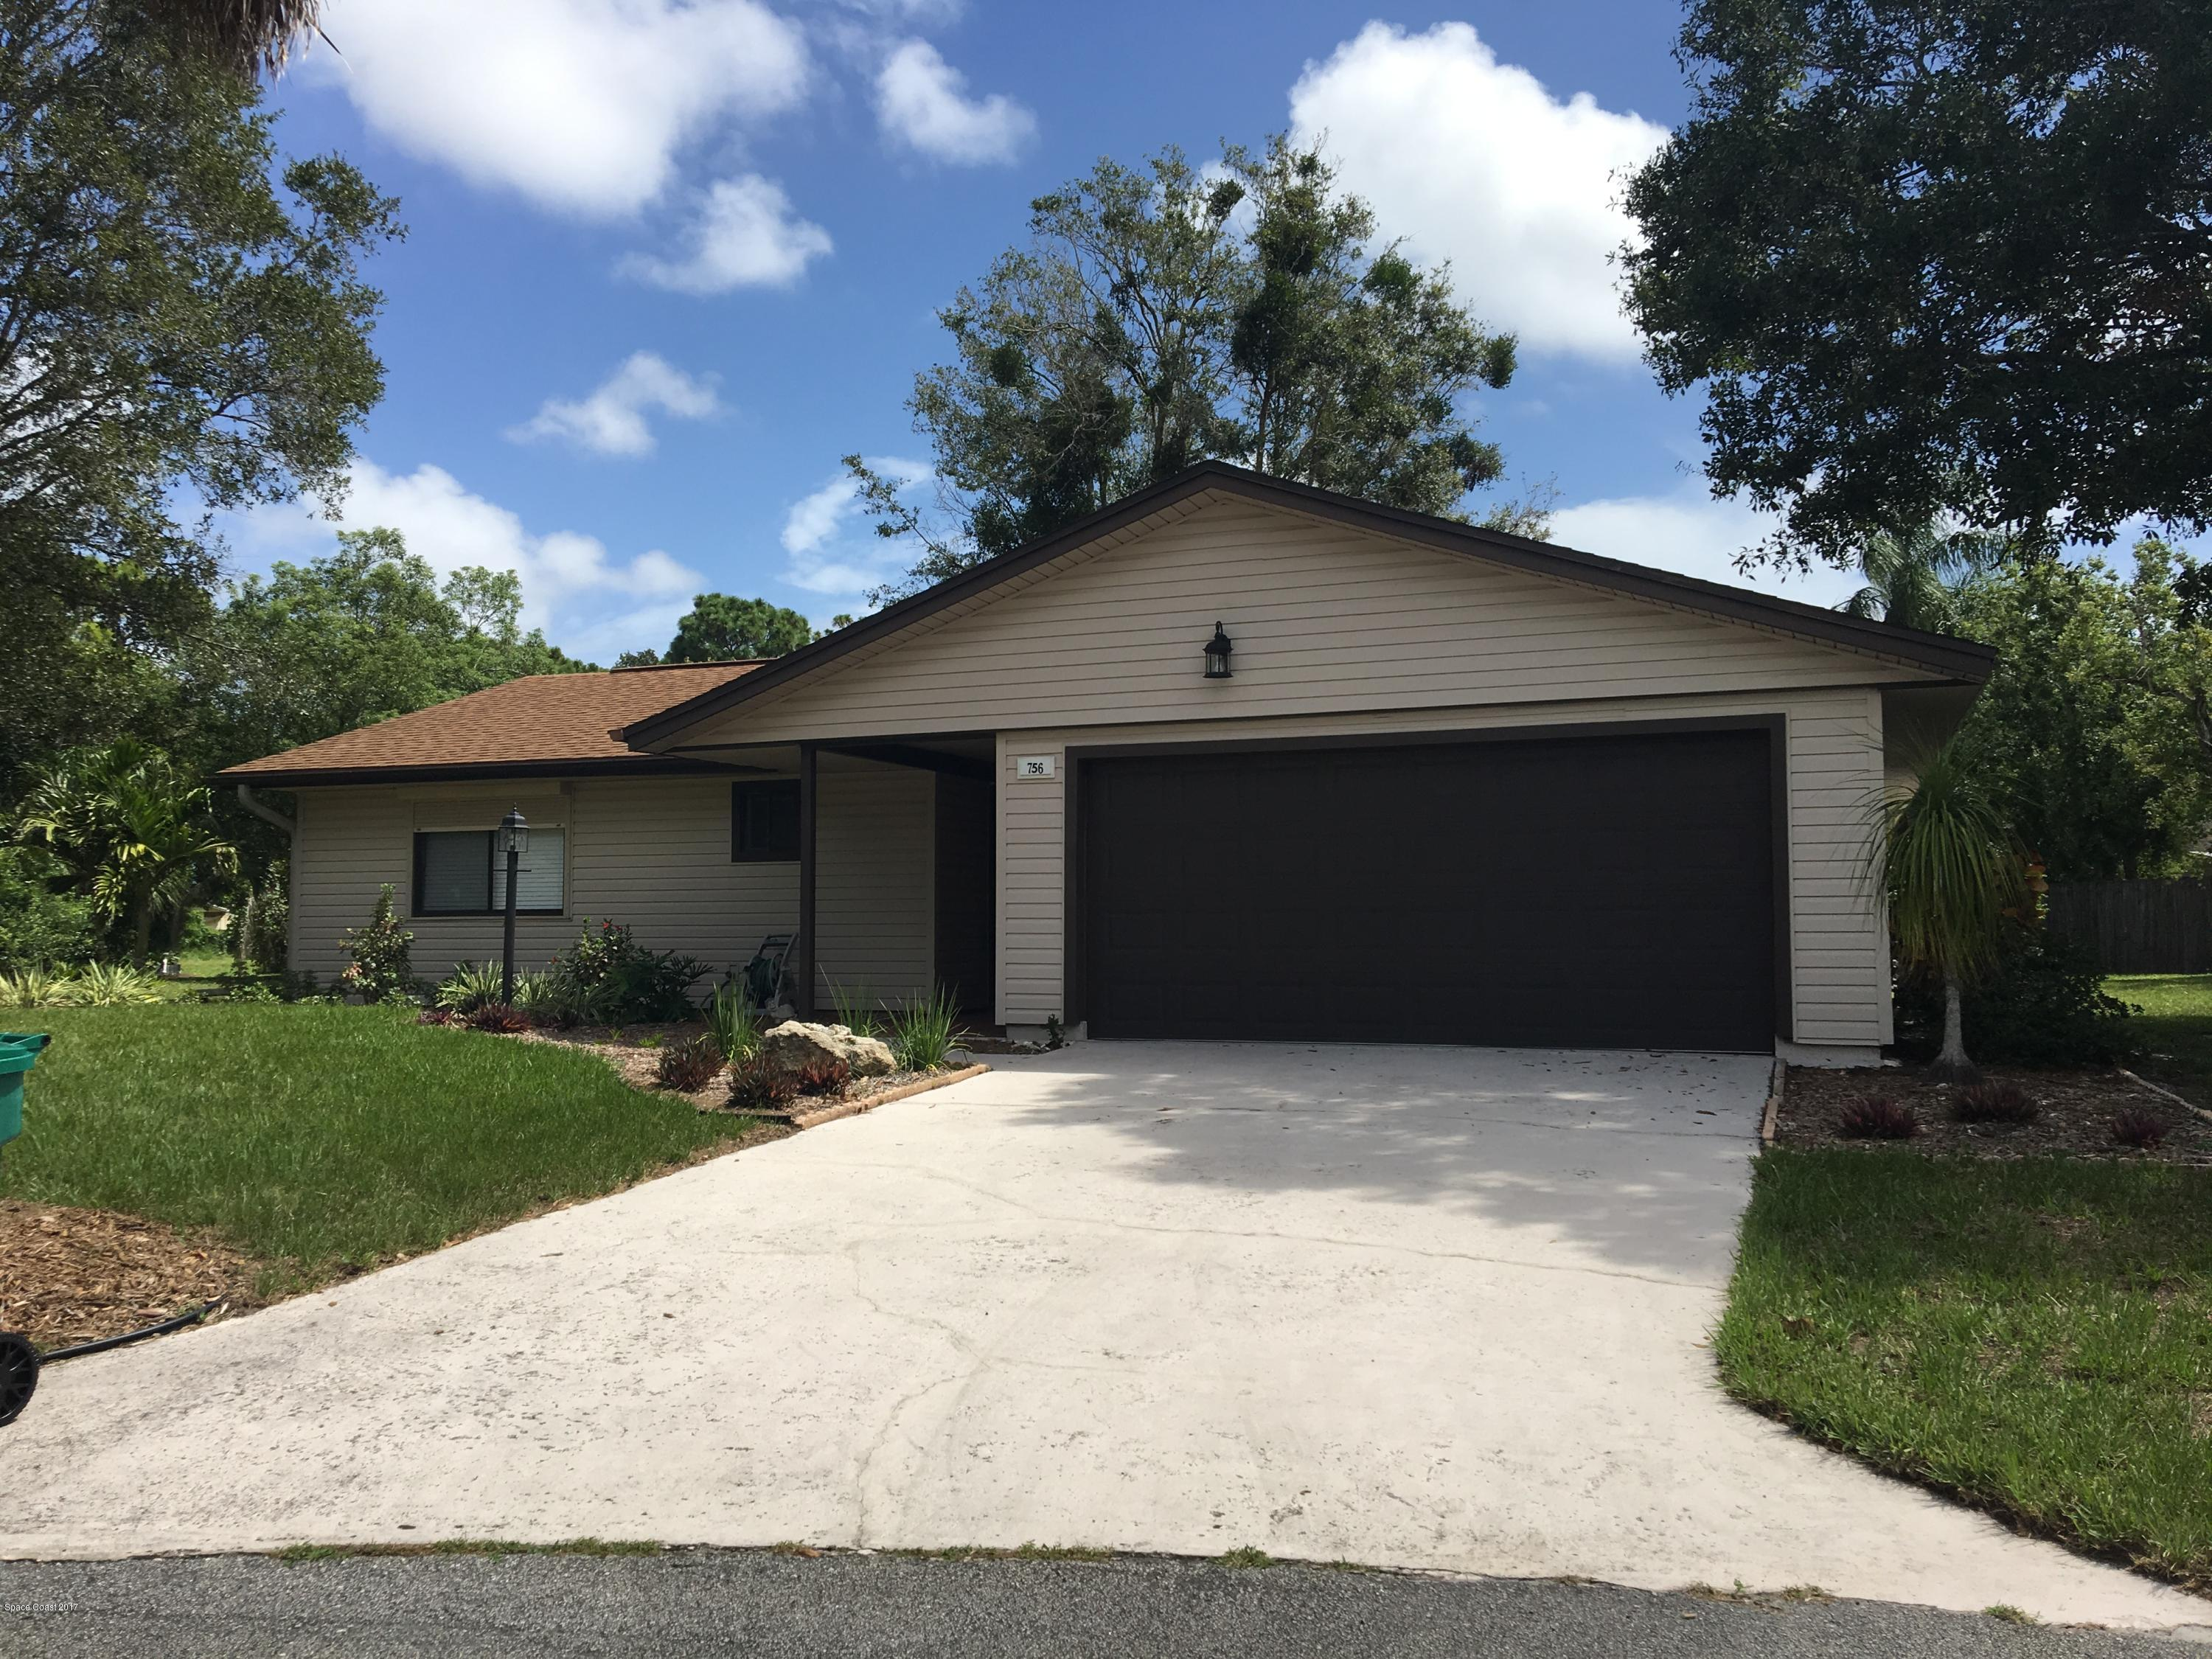 Single Family Home for Rent at 756 John Carroll 756 John Carroll West Melbourne, Florida 32904 United States